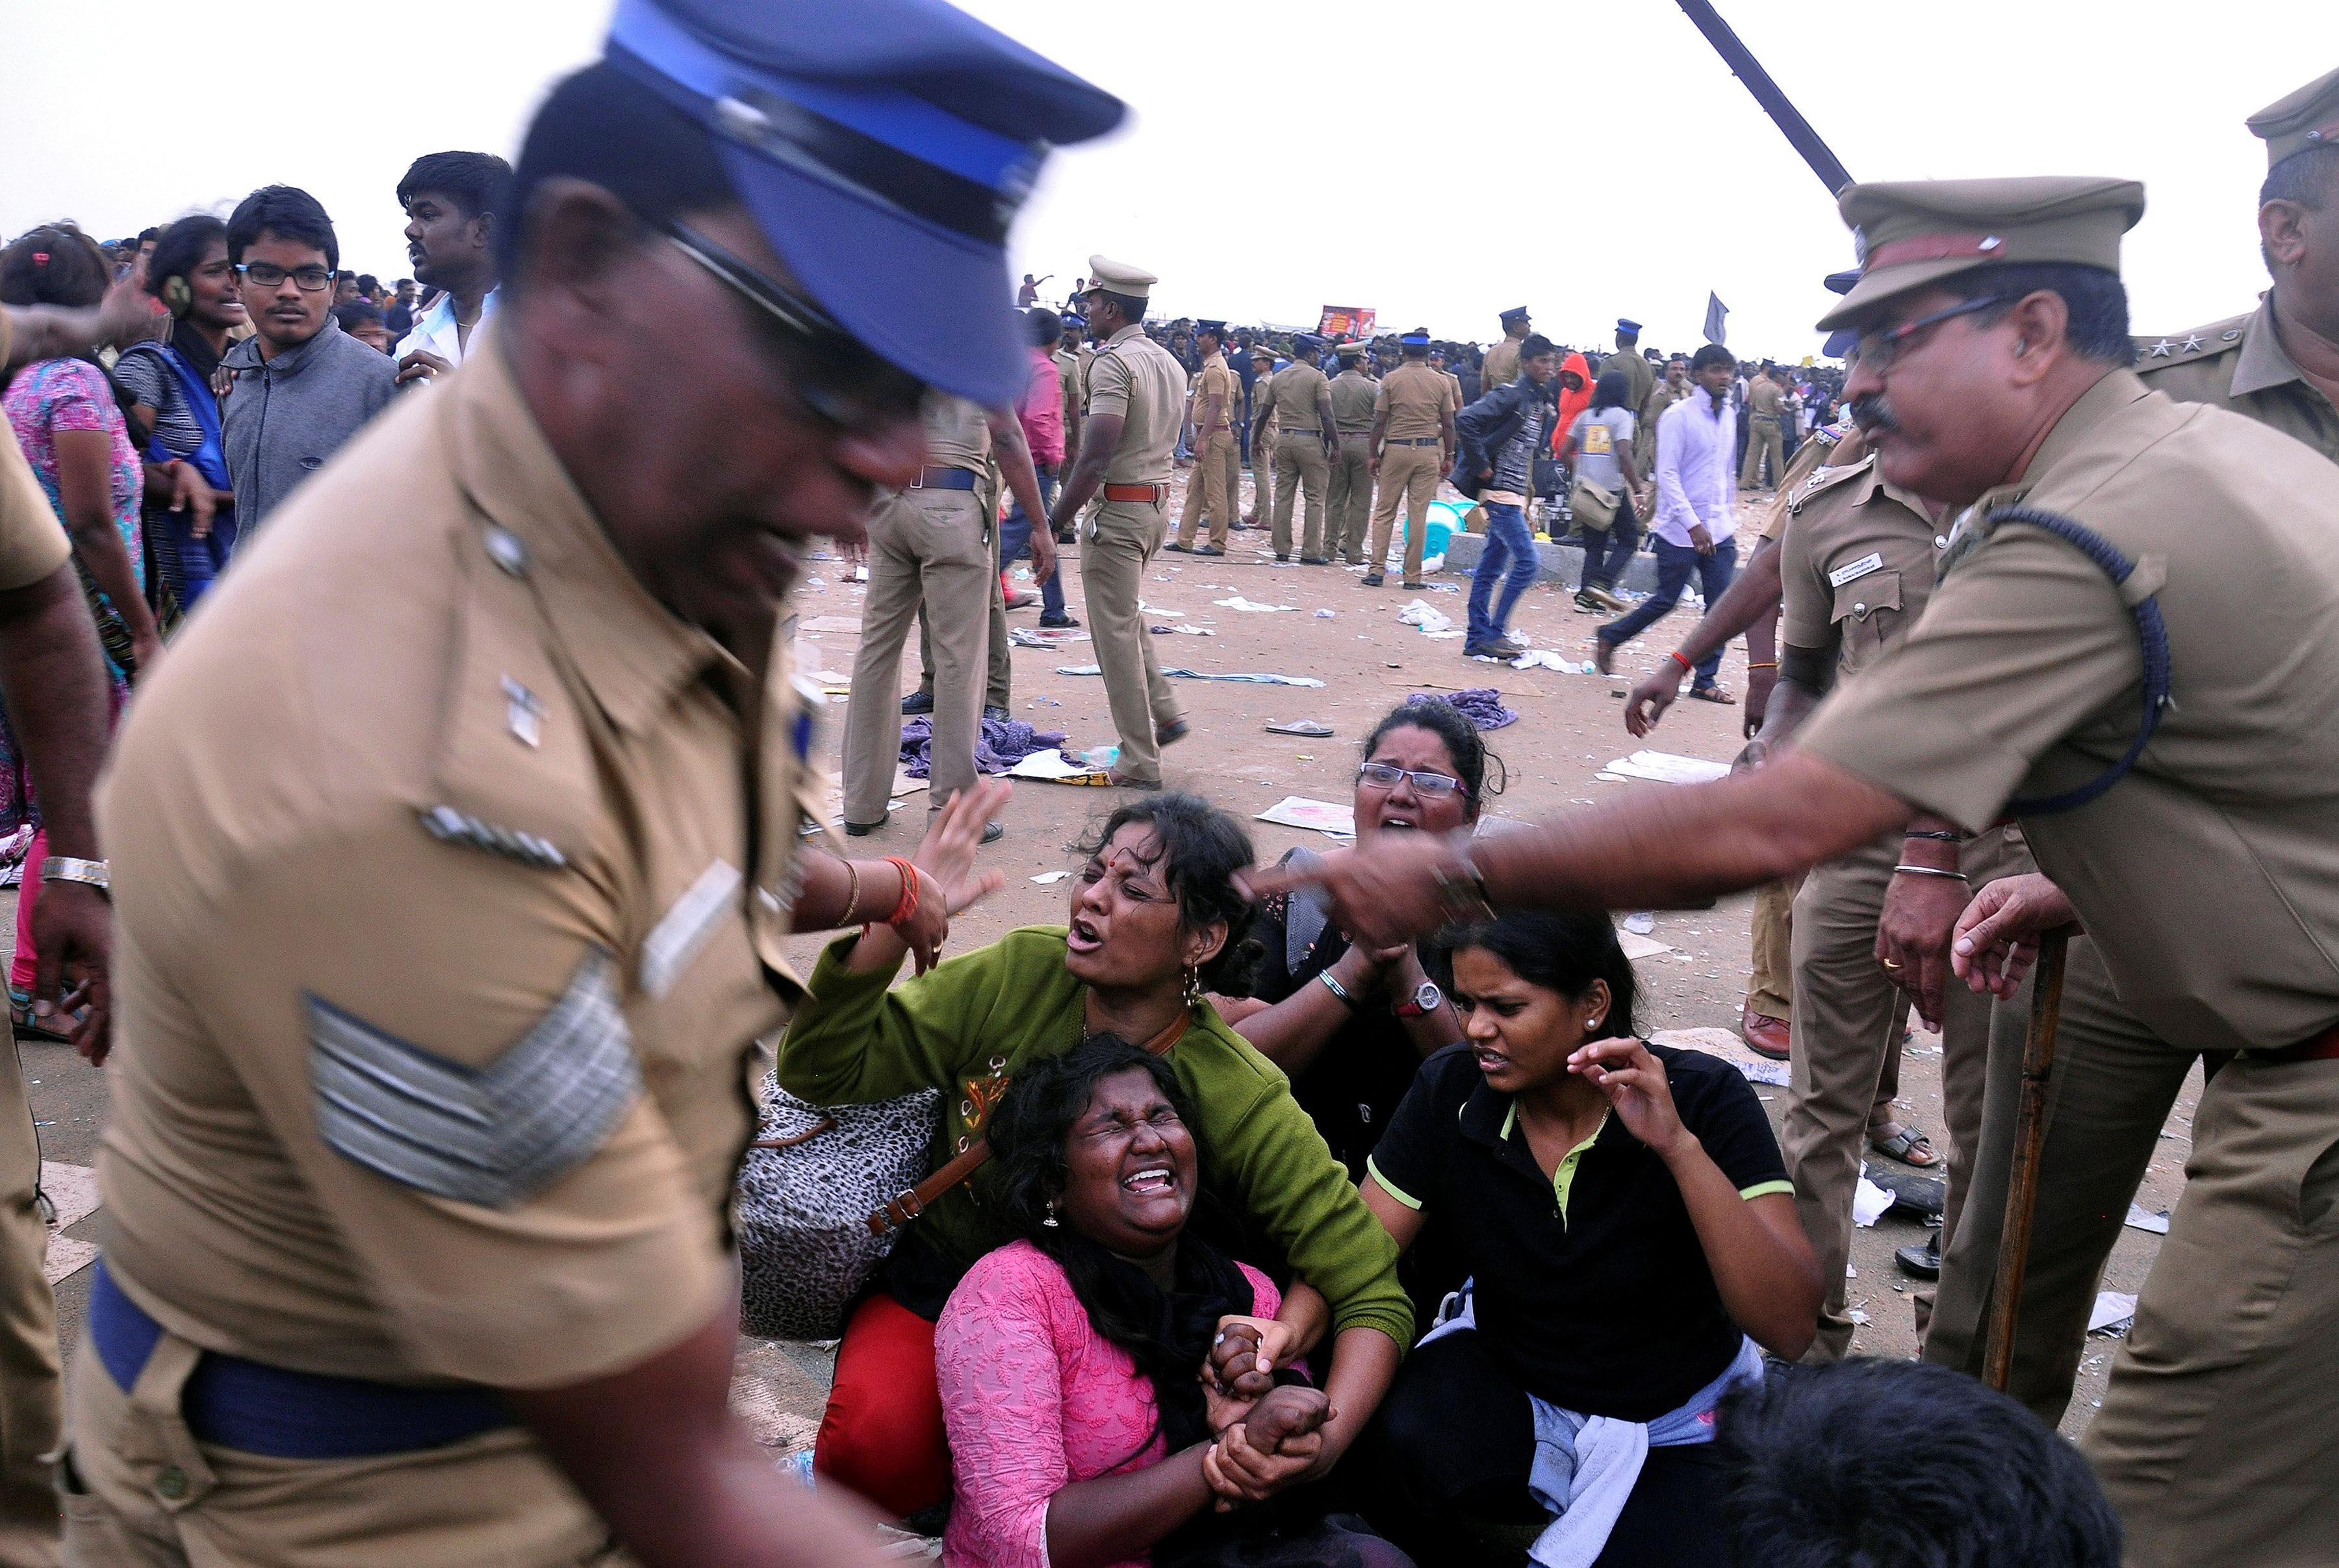 Preotesters forcibly removed from chennai's Marina beach by the Police